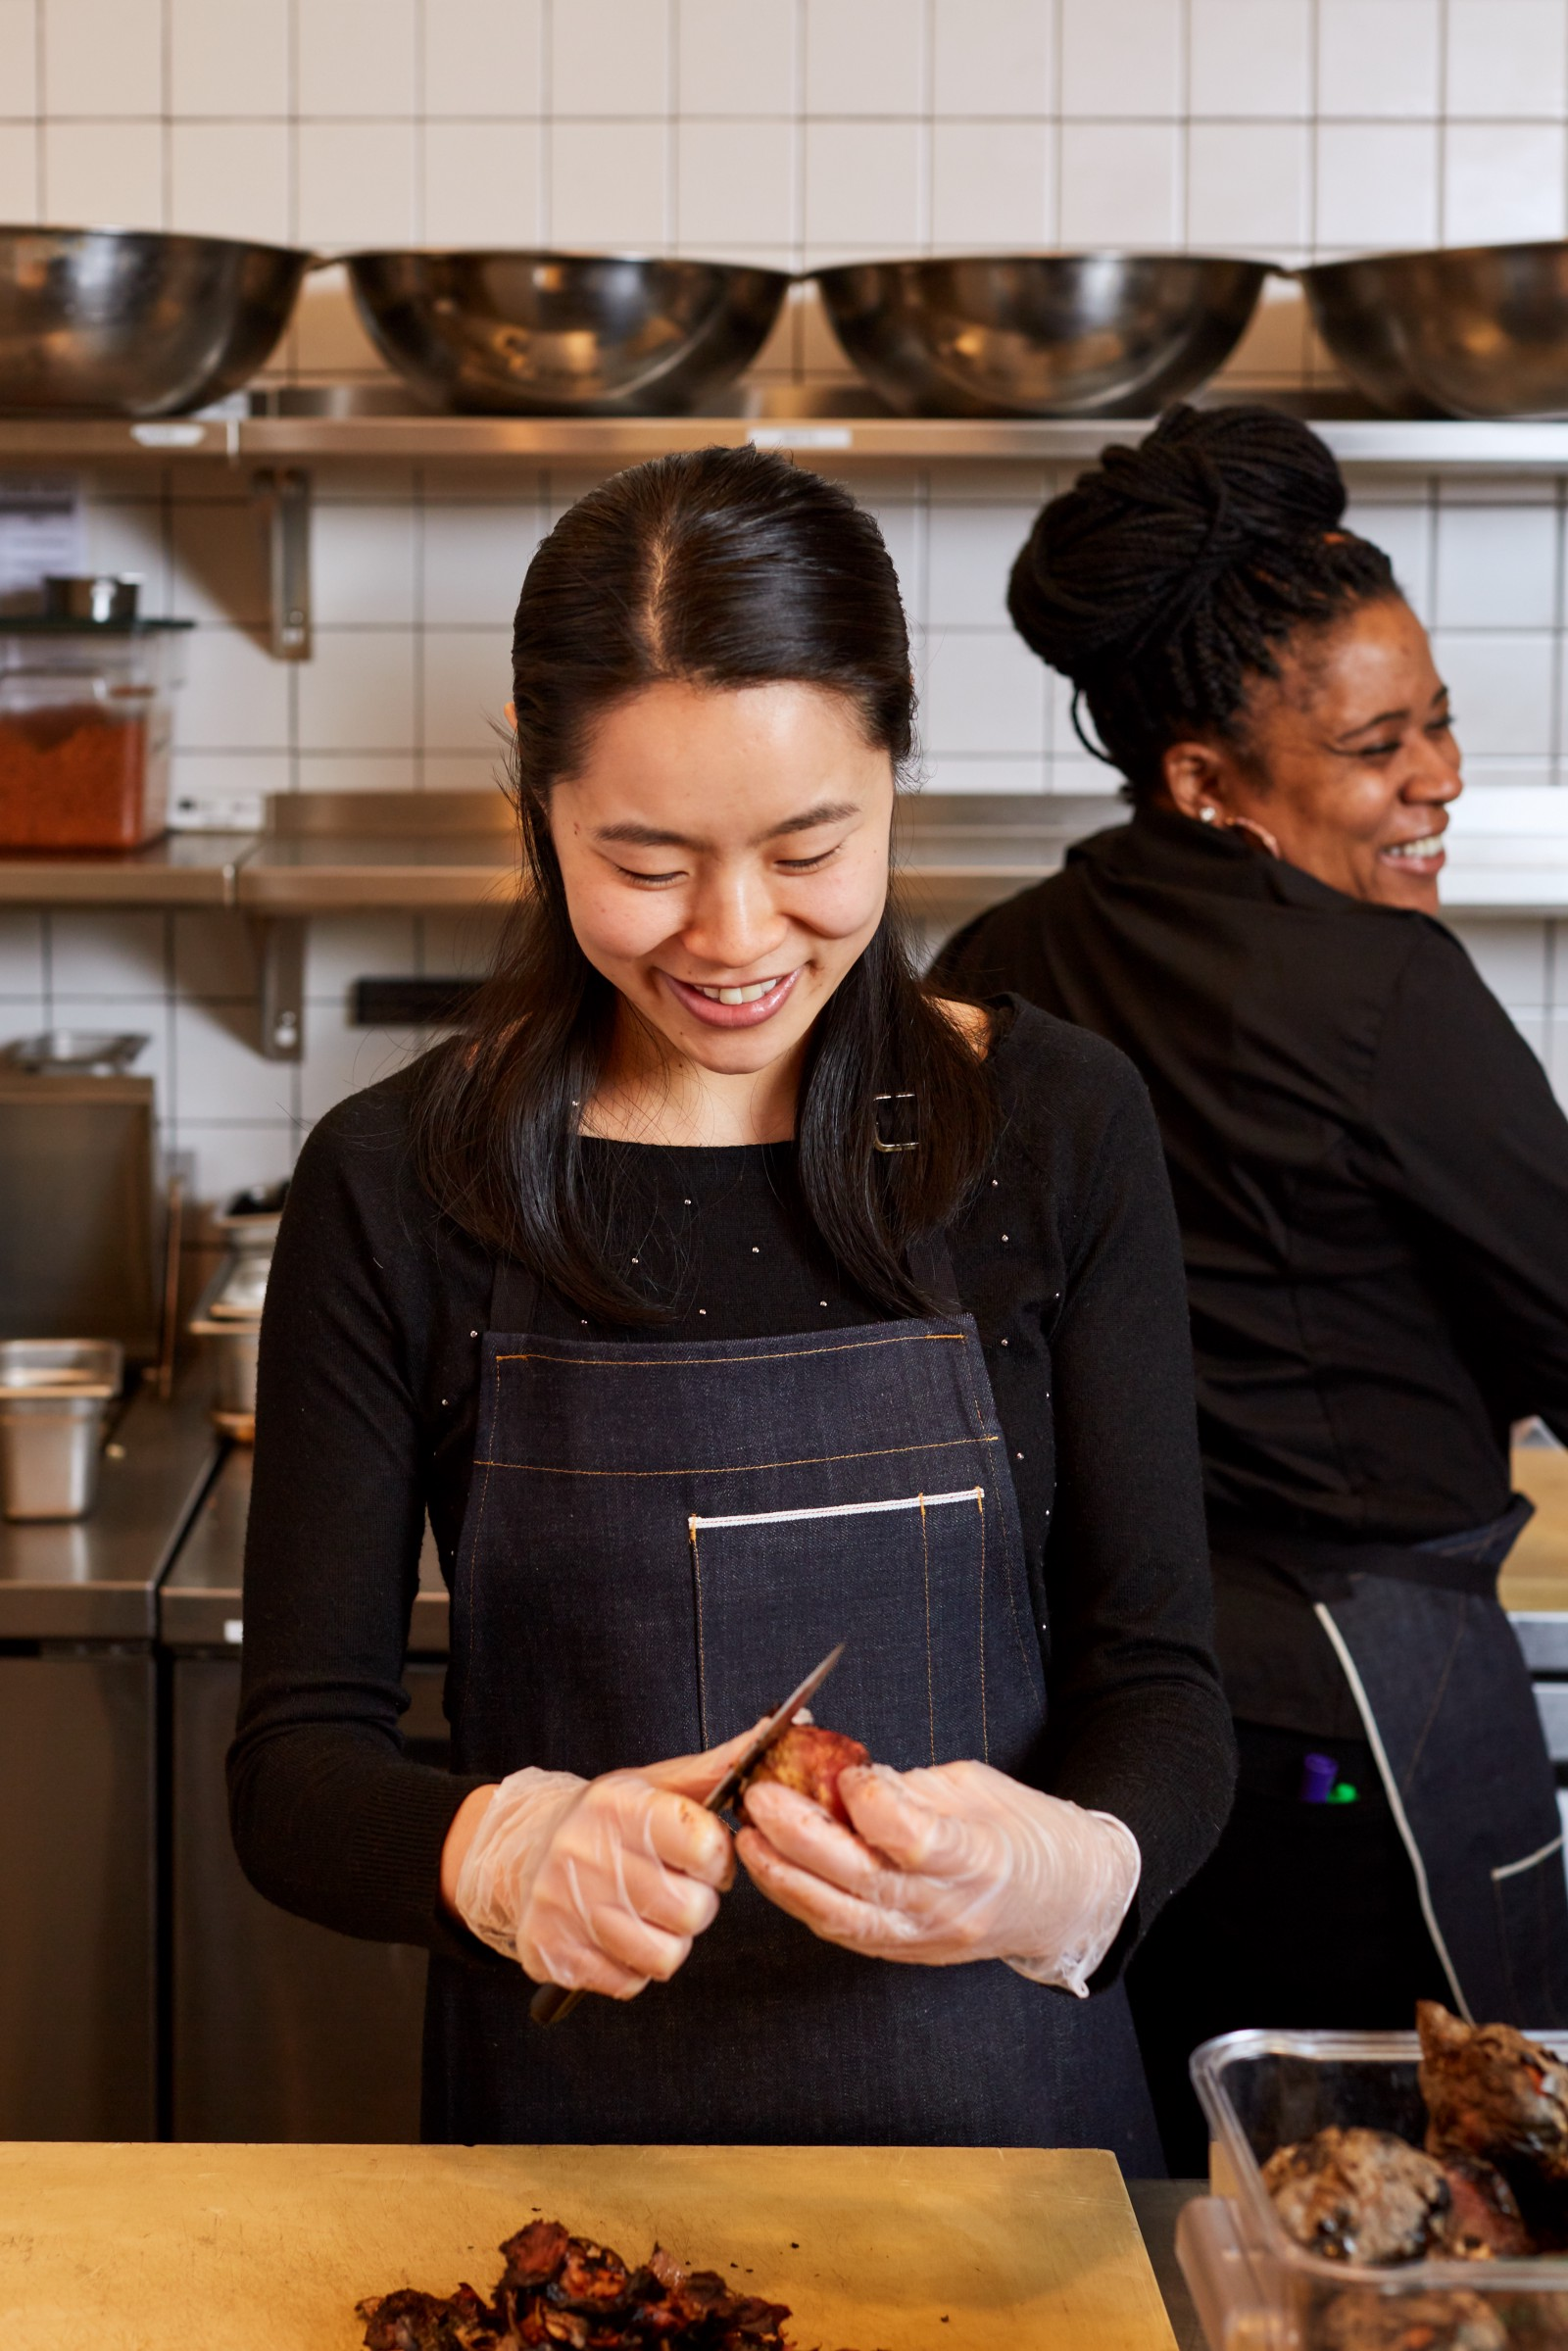 Woman up meet the women running dig inns kitchens stephanie is head chef at 80 pine st in fidi only 26 shes been in the restaurant industry basically since birth when she was growing up in forest hills m4hsunfo